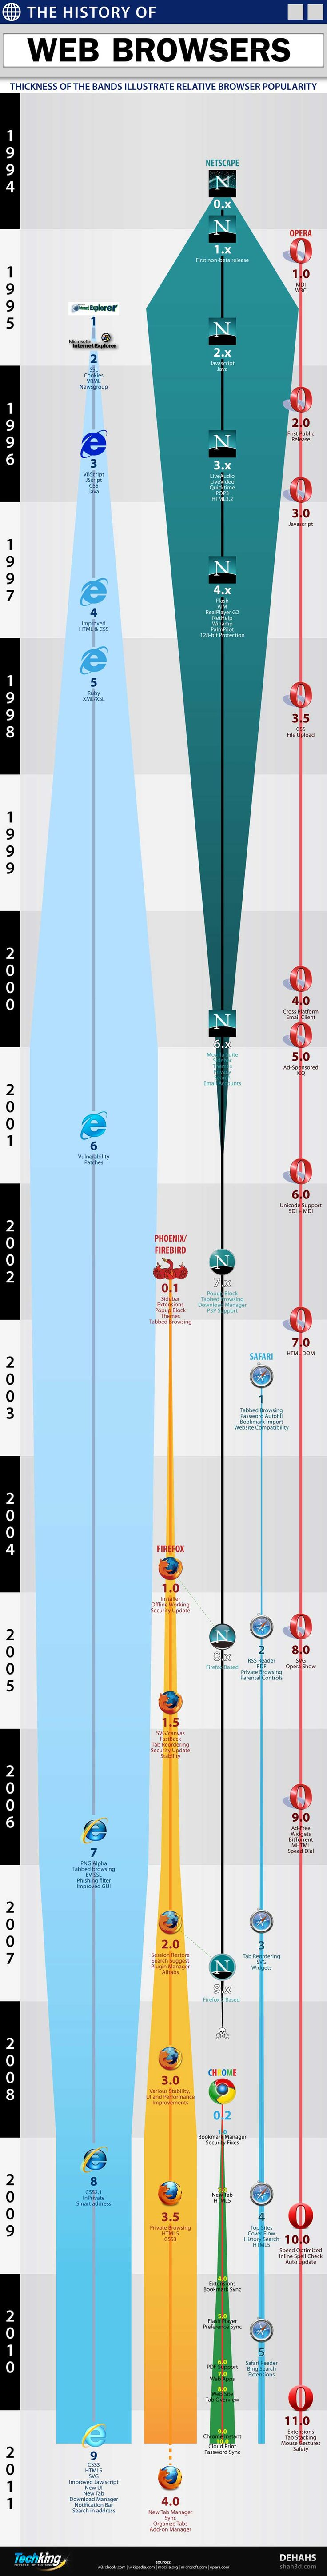 The History Of Web Browsers (few mistakes here - Opera had mouse gestures in 2003, for example - but otherwise an actually useful infographic)